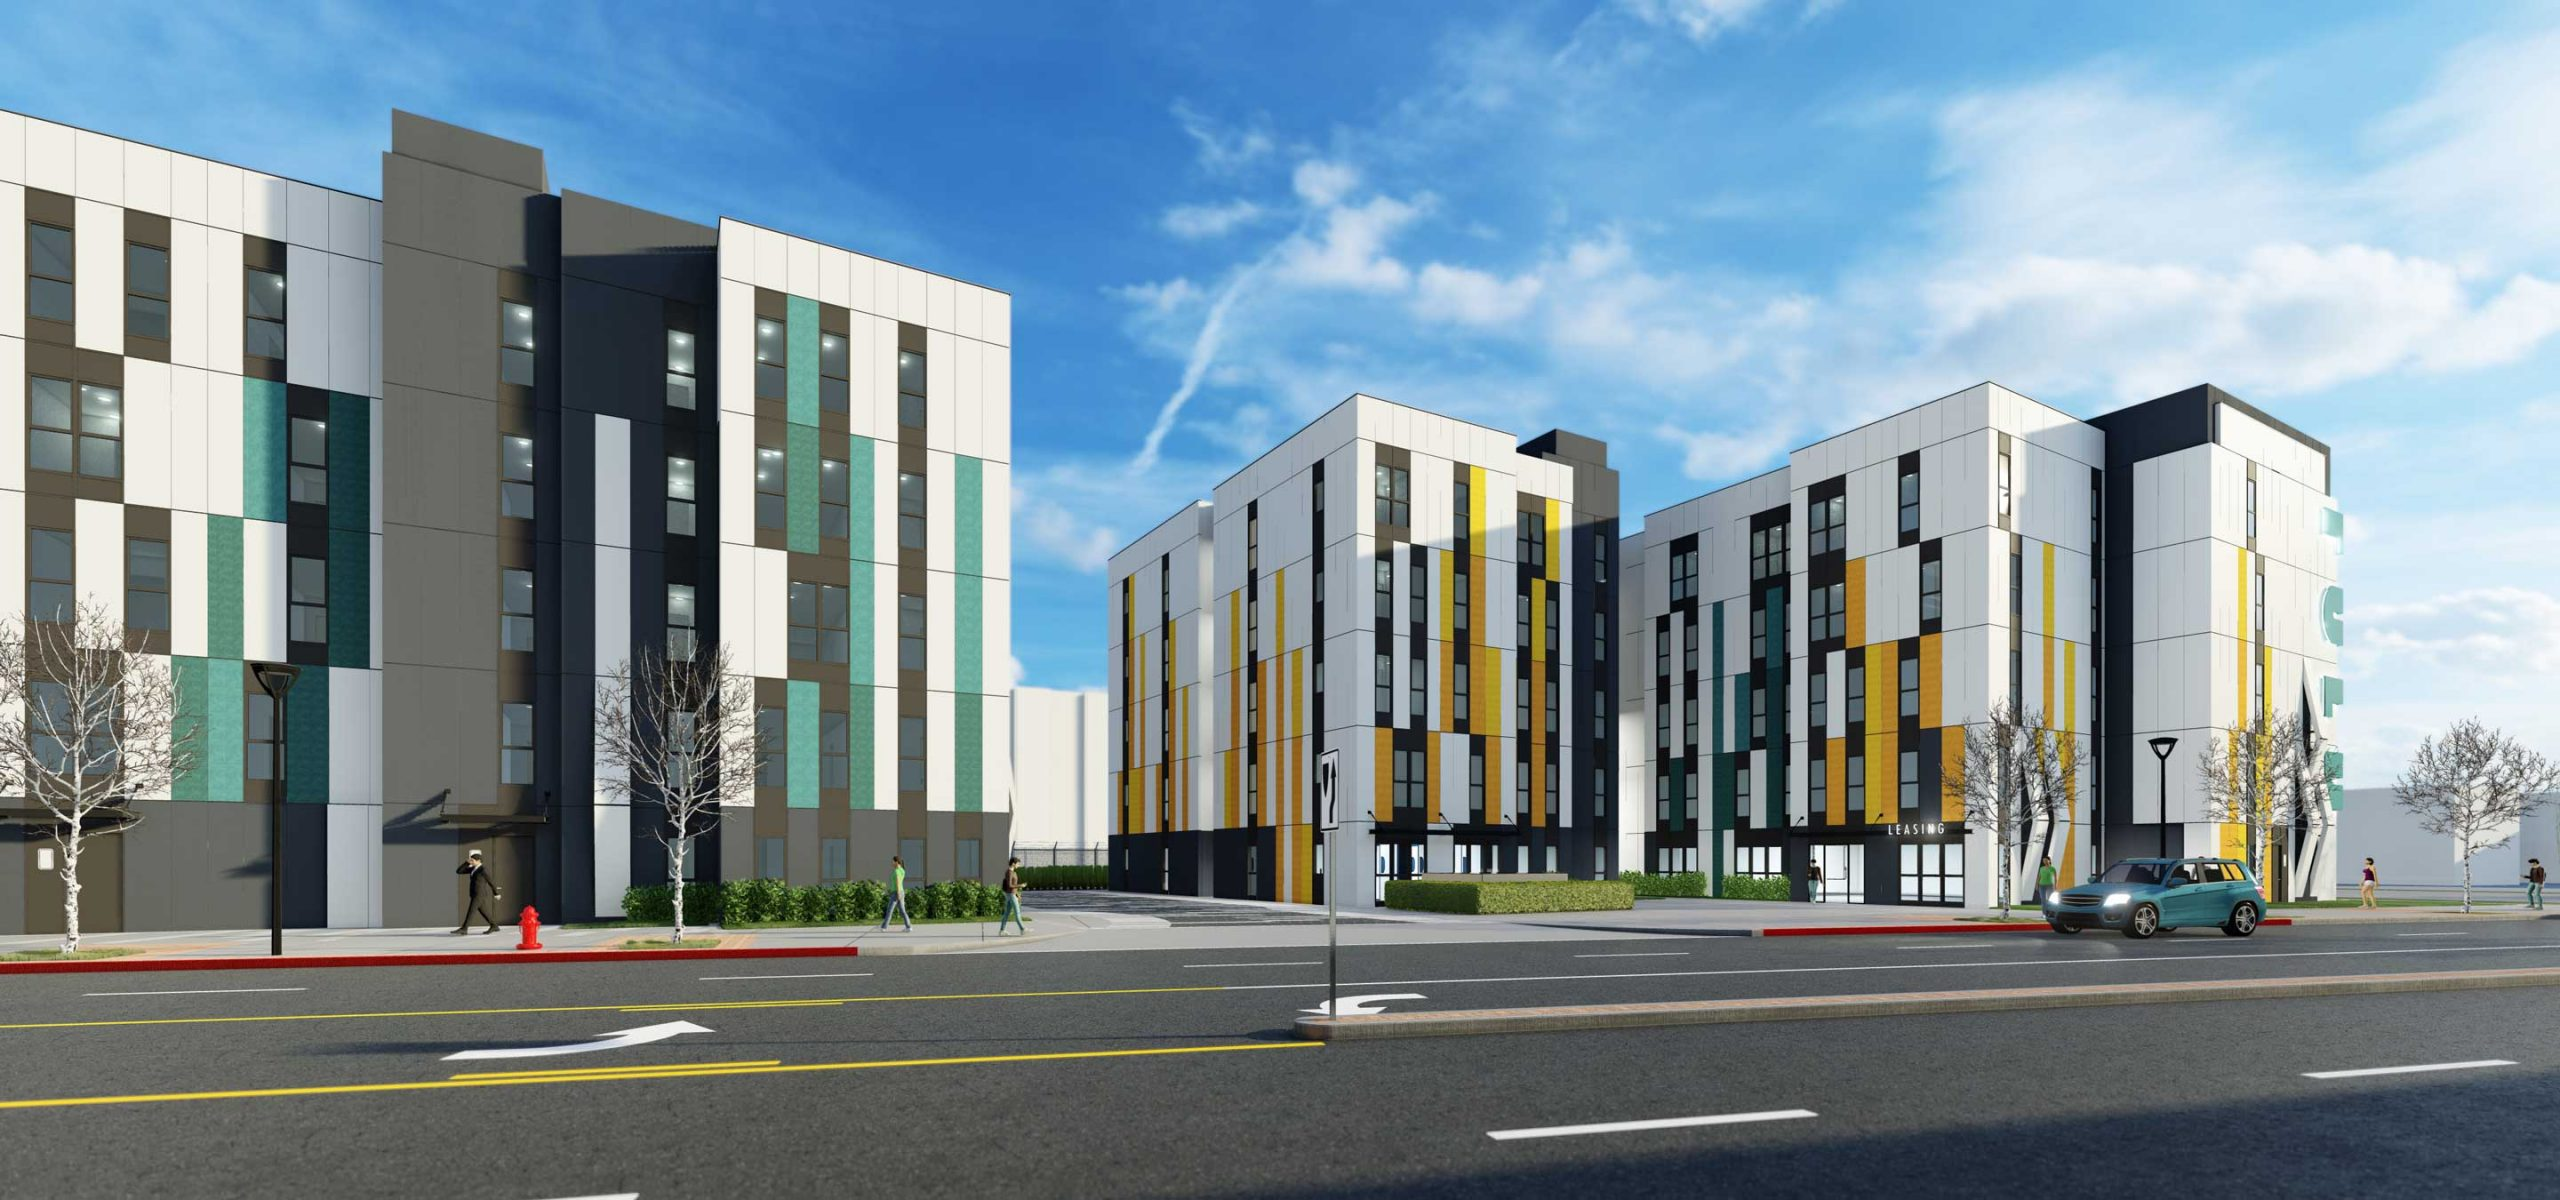 Rendering of 5-story modular apartments